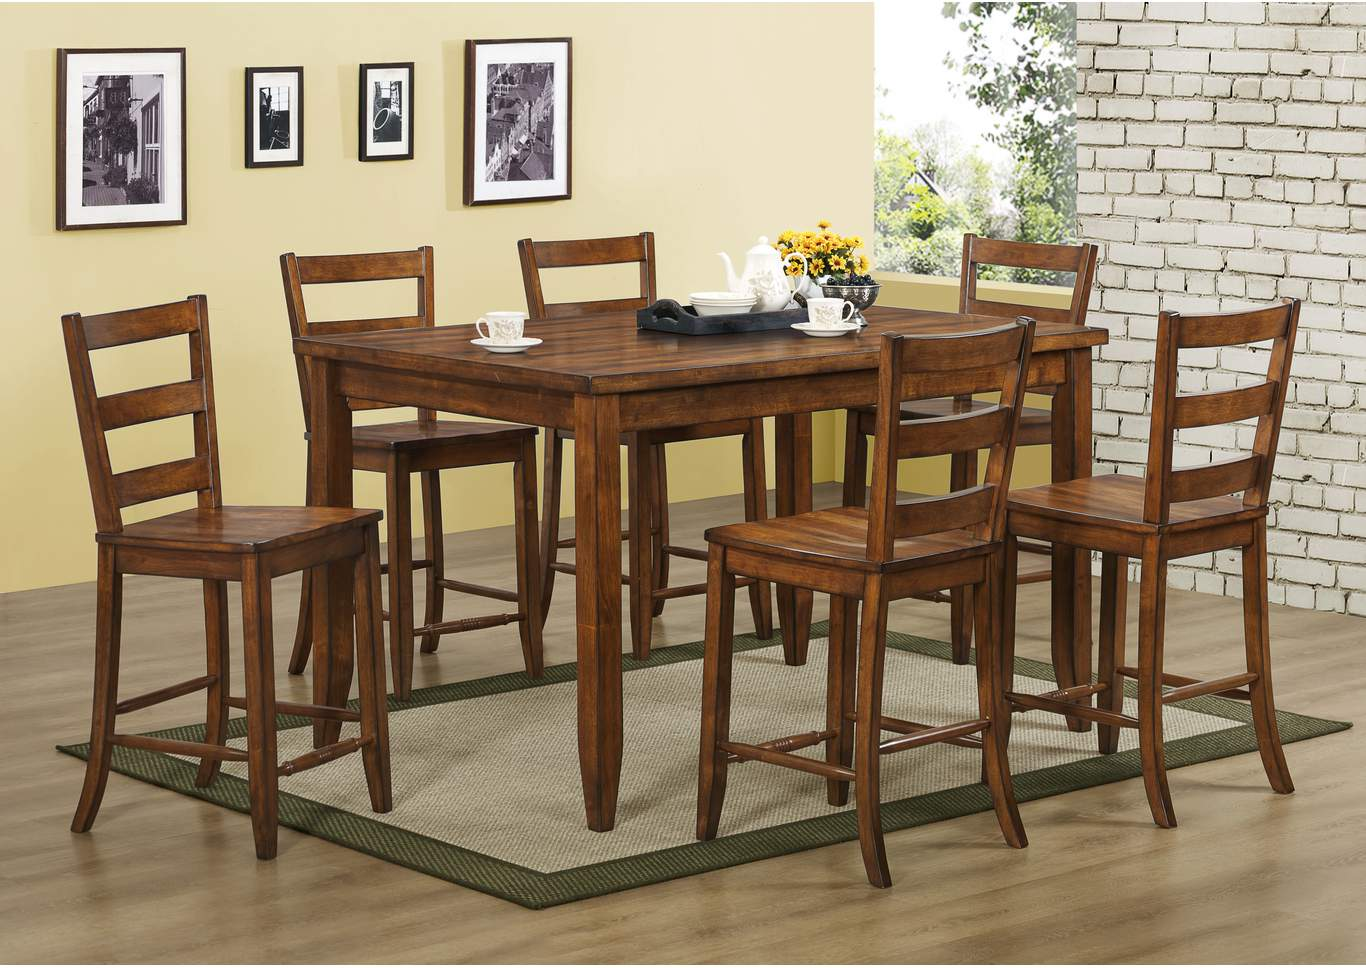 counter height round dining room table w 4 counter height chair